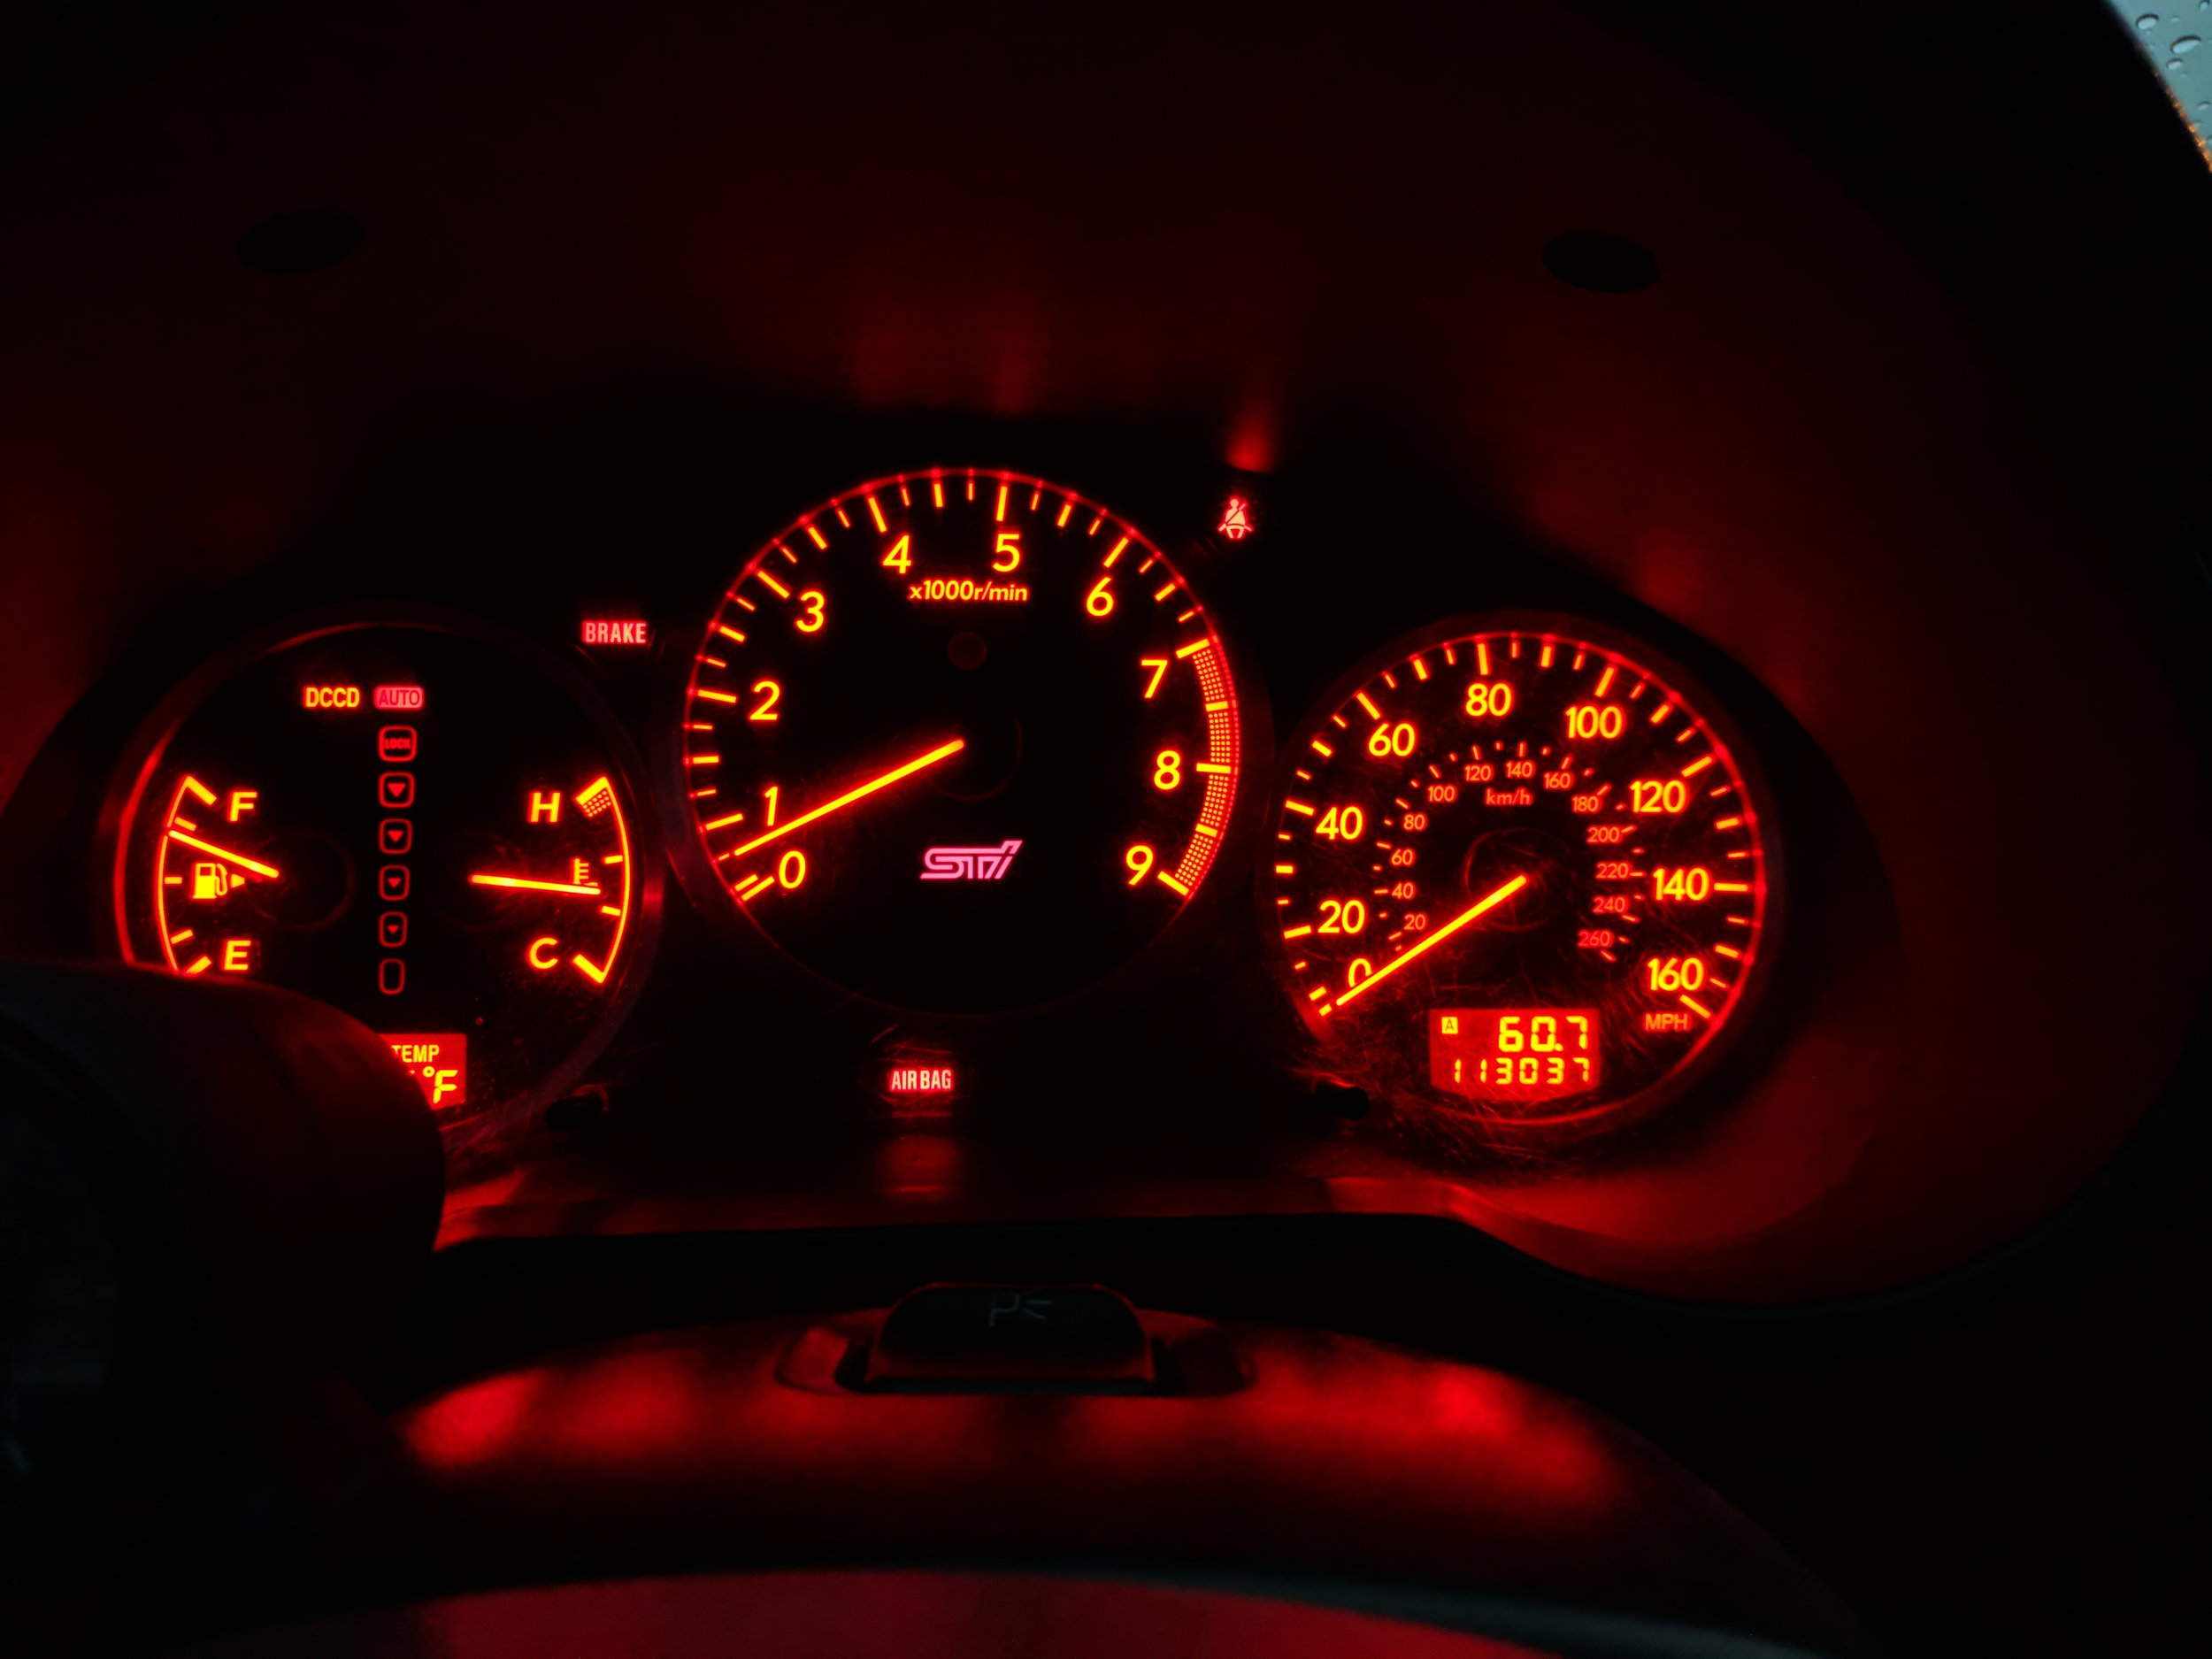 While these gauges are helpful, a performance car with modifications should be keeping further tabs on everything.